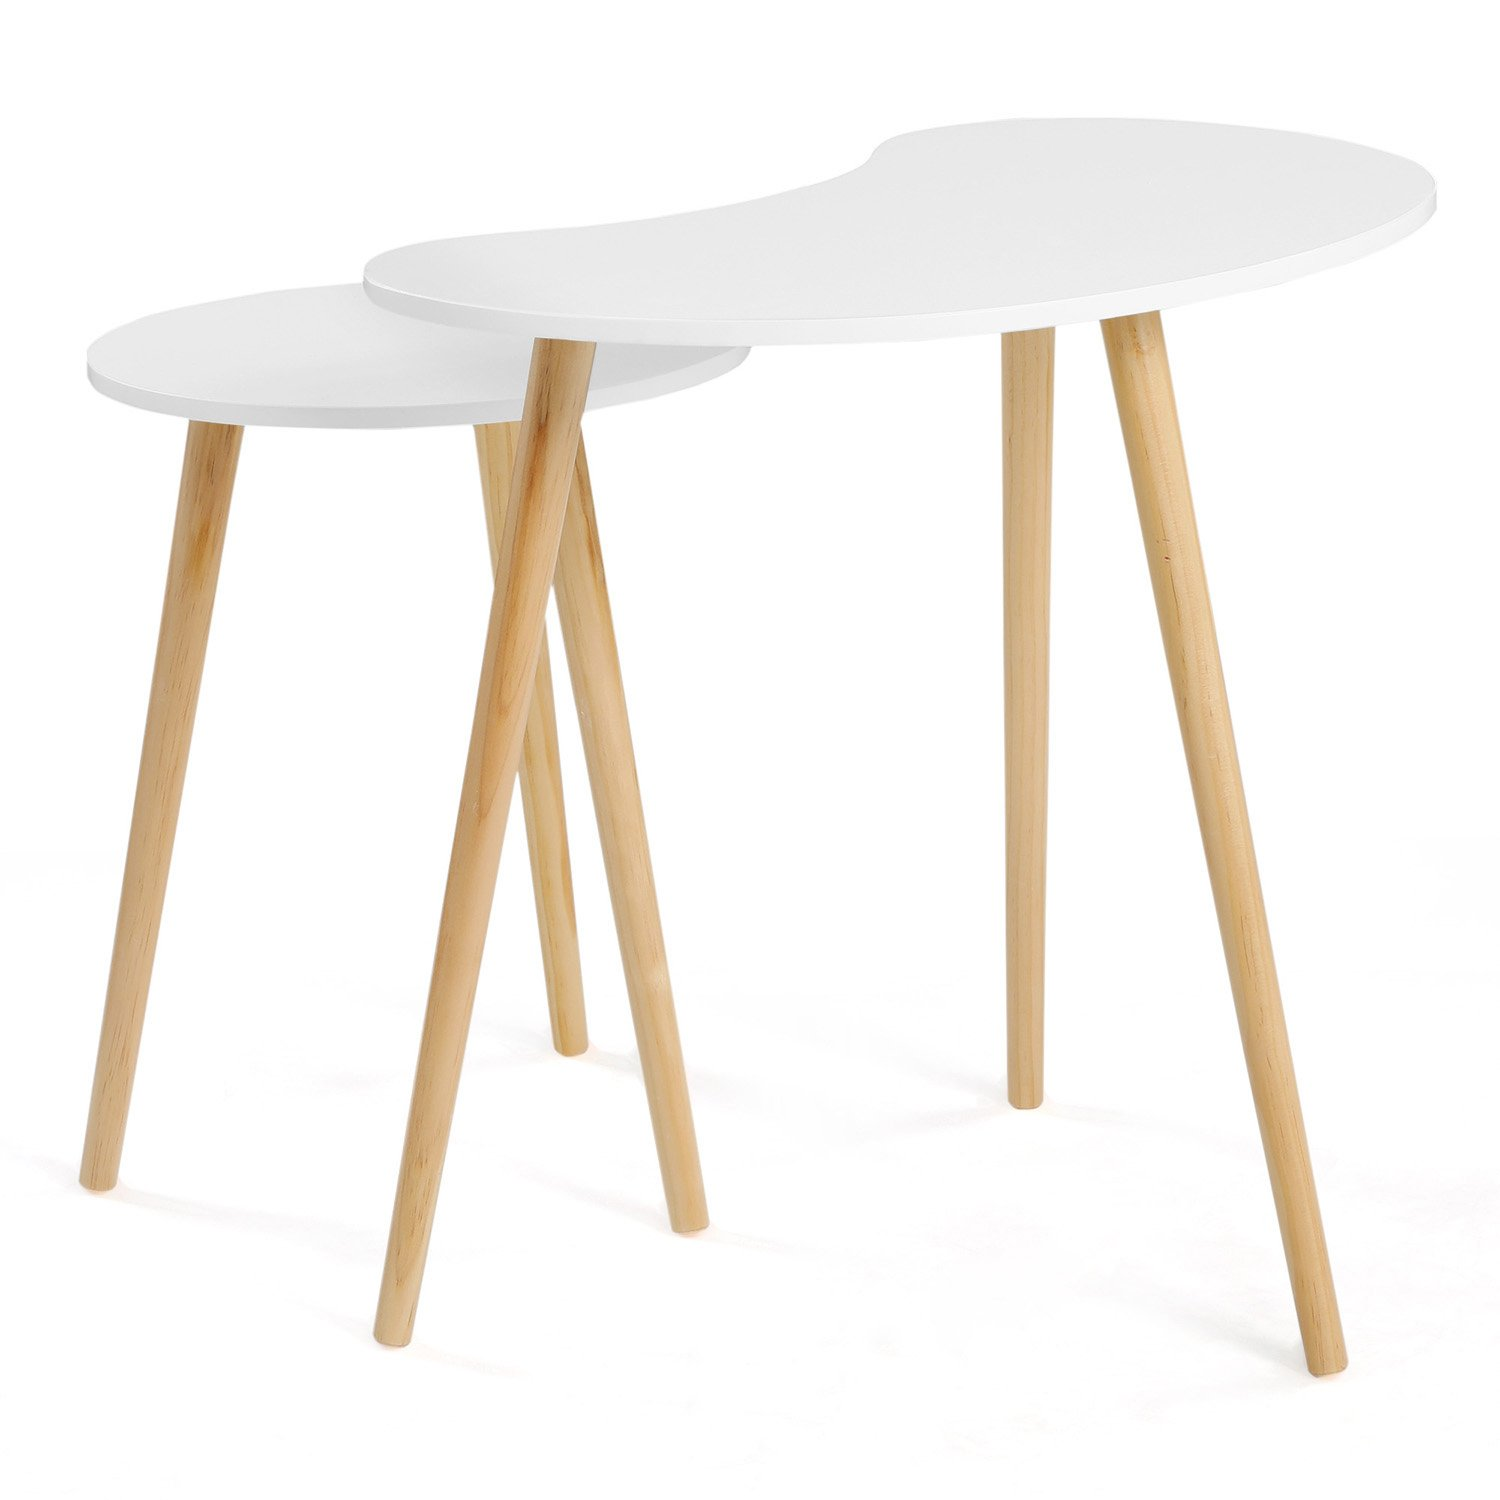 3 Solid Pine Legs for Living Room Bedroom Kids Room Nature White Tabletop Set of 2 3 Solid Pine Legs for Living Room Bedroom Kid/'s Room 21.6 in Height SONGMICS Nesting Tables Coffee End Tables Pea Shape Modern Furniture Daffodil Series 17.8 in